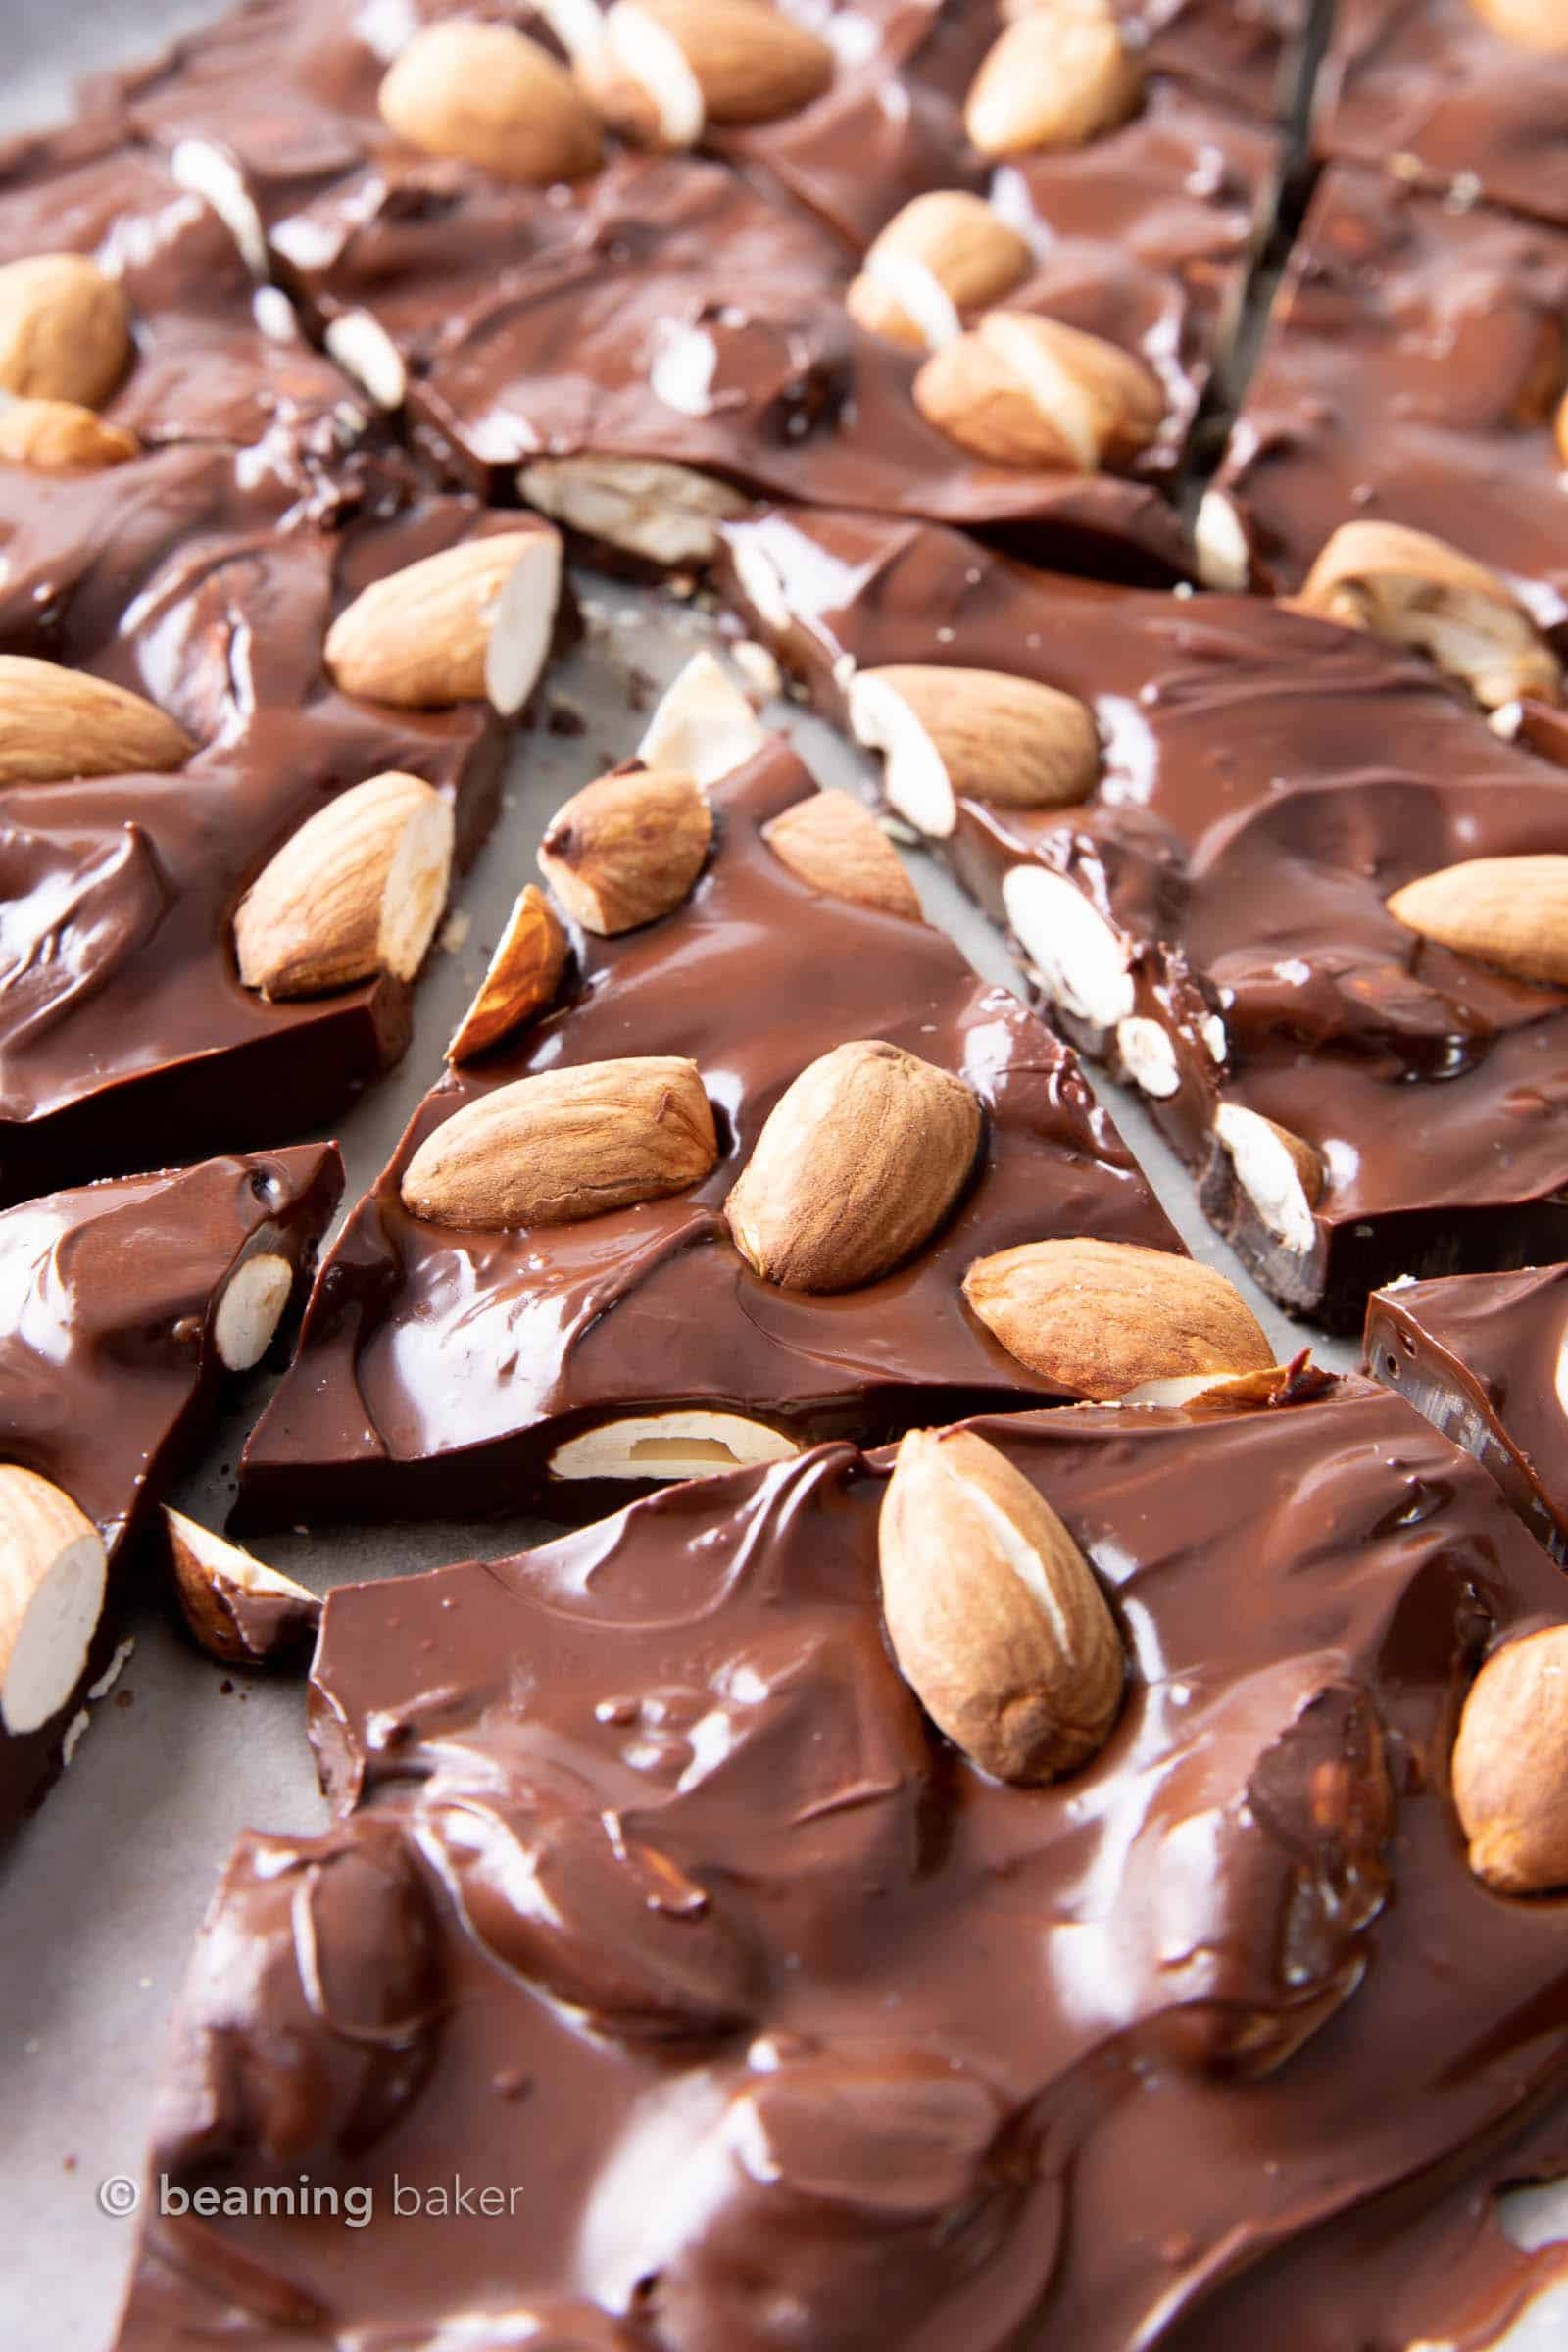 3 Ingredient Keto Almond Bark Recipe: this 5 minute keto candy recipe is decadent, rich and Low Carb! Easy to Make, Dairy-Free. #KetoCandy #Keto #LowCarb #SugarFree | Recipe at BeamingBaker.com